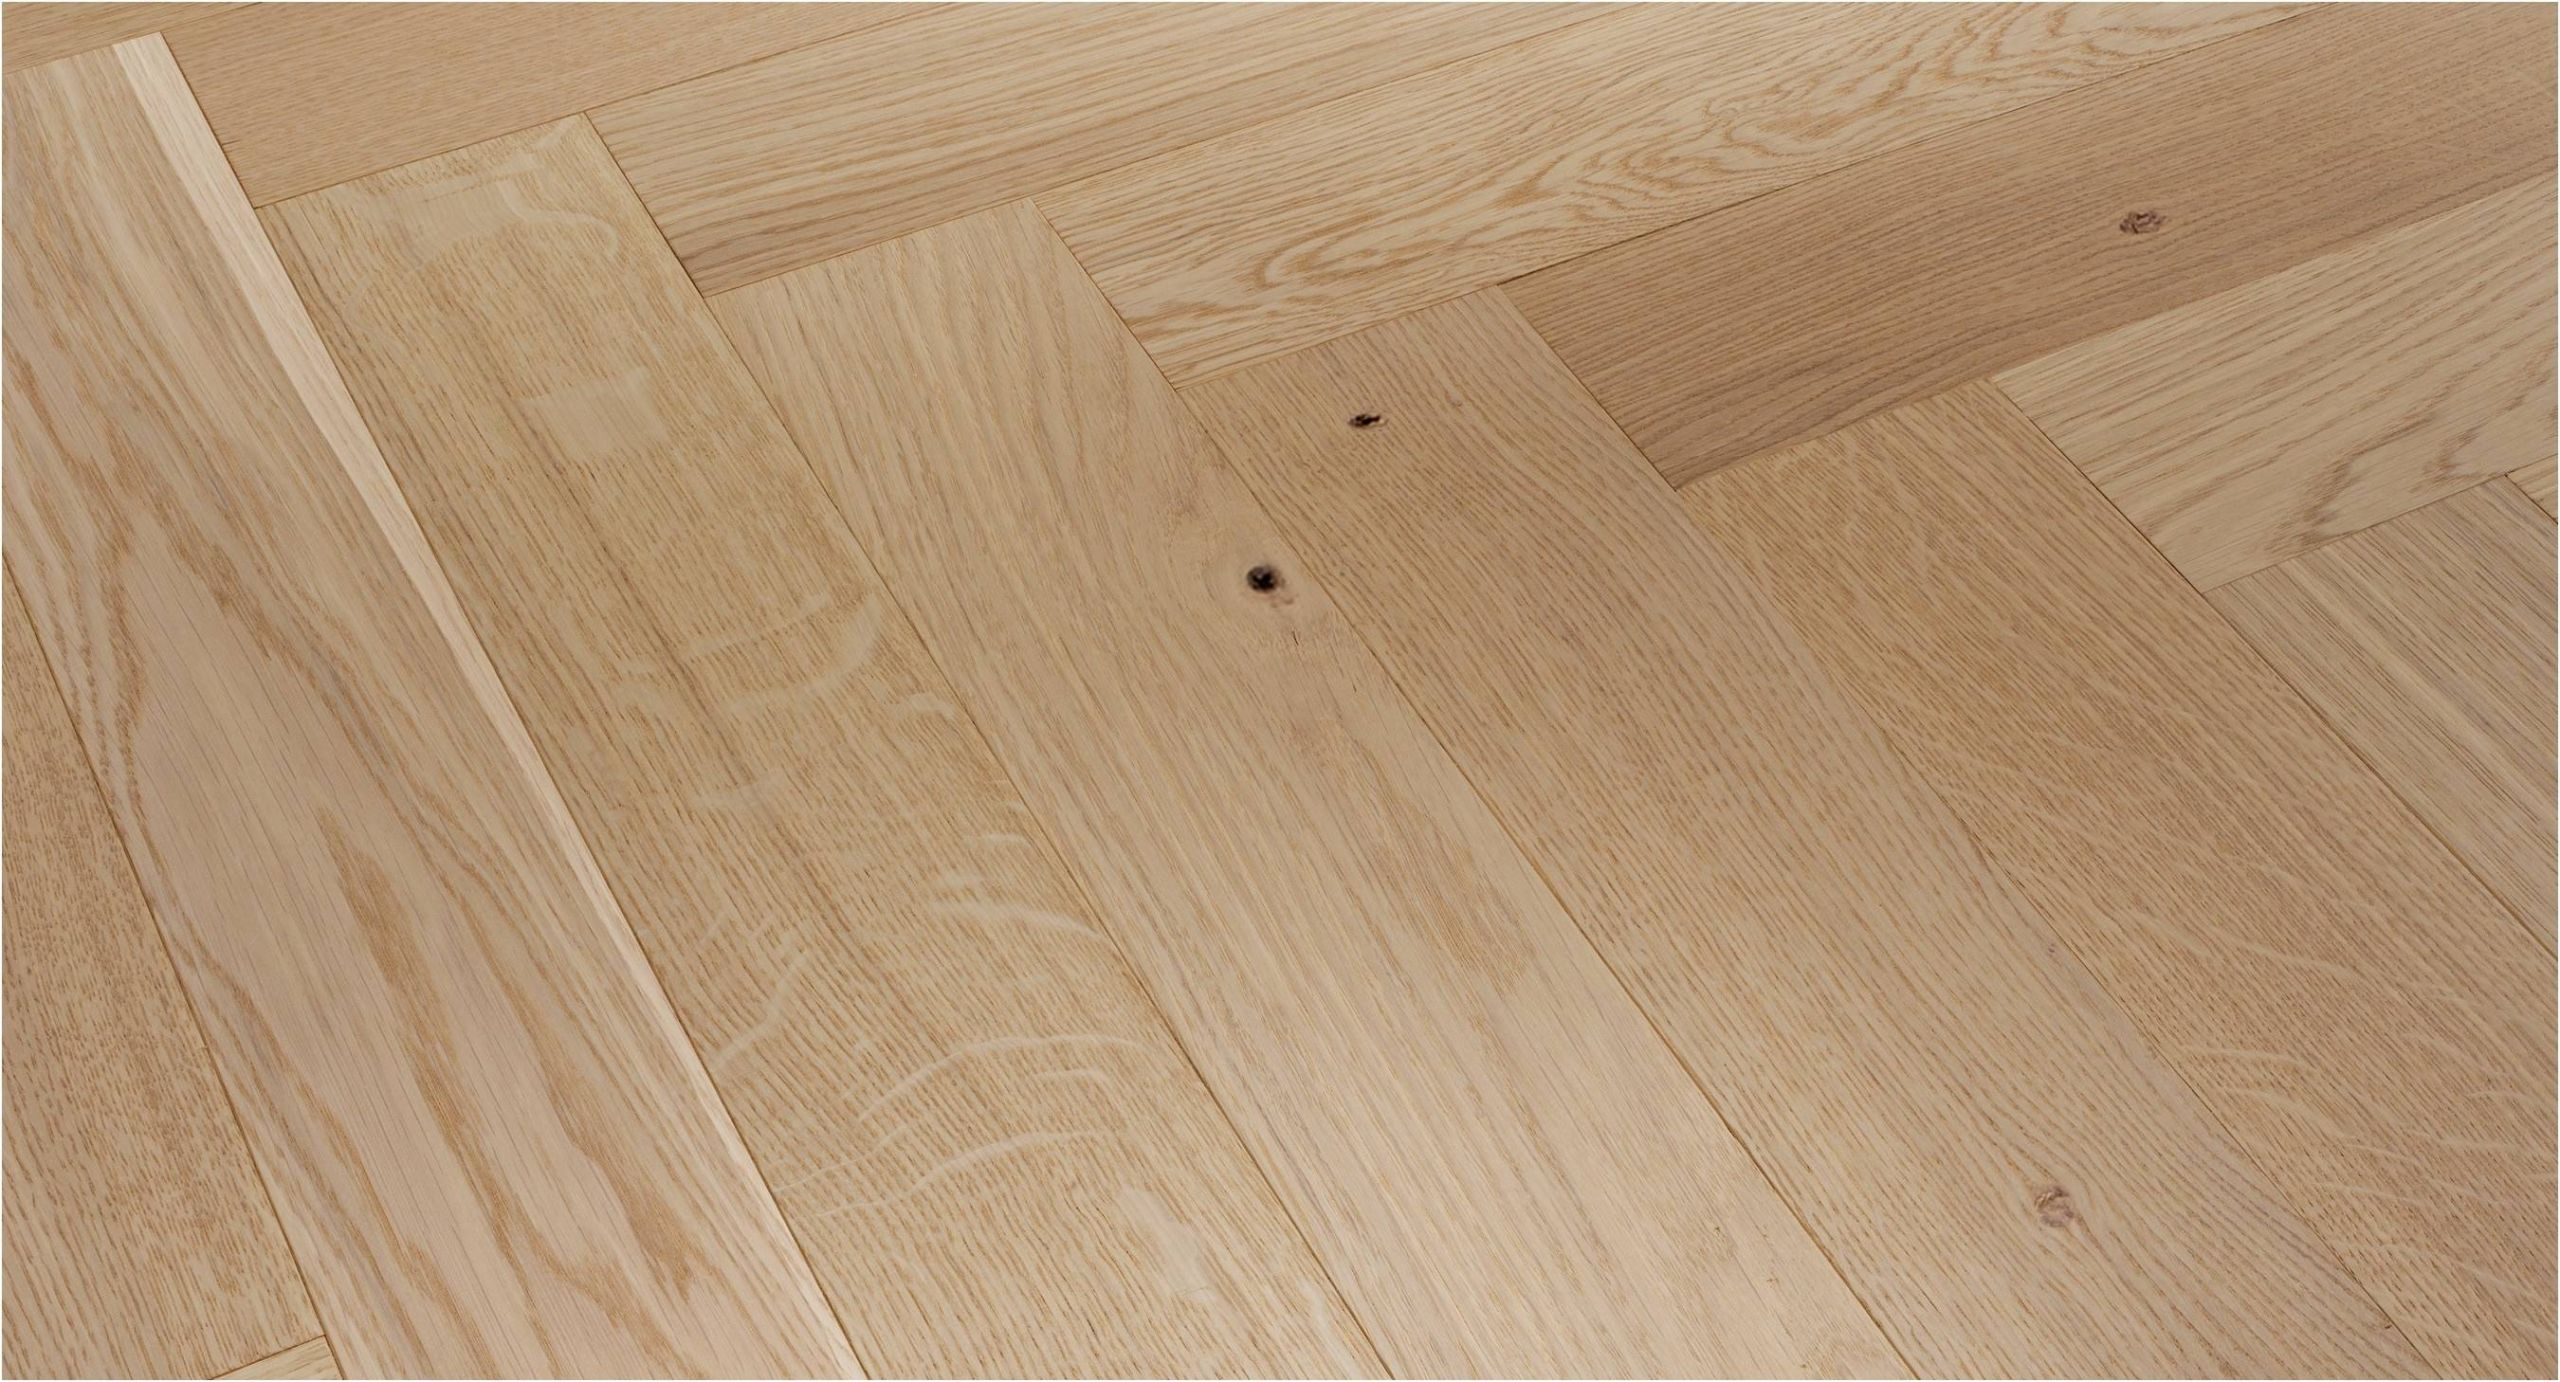 laminate flooring vs hardwood flooring of laminate flooring transition luxury the flooring place best place with regard to laminate flooring transition luxury the flooring place best place f